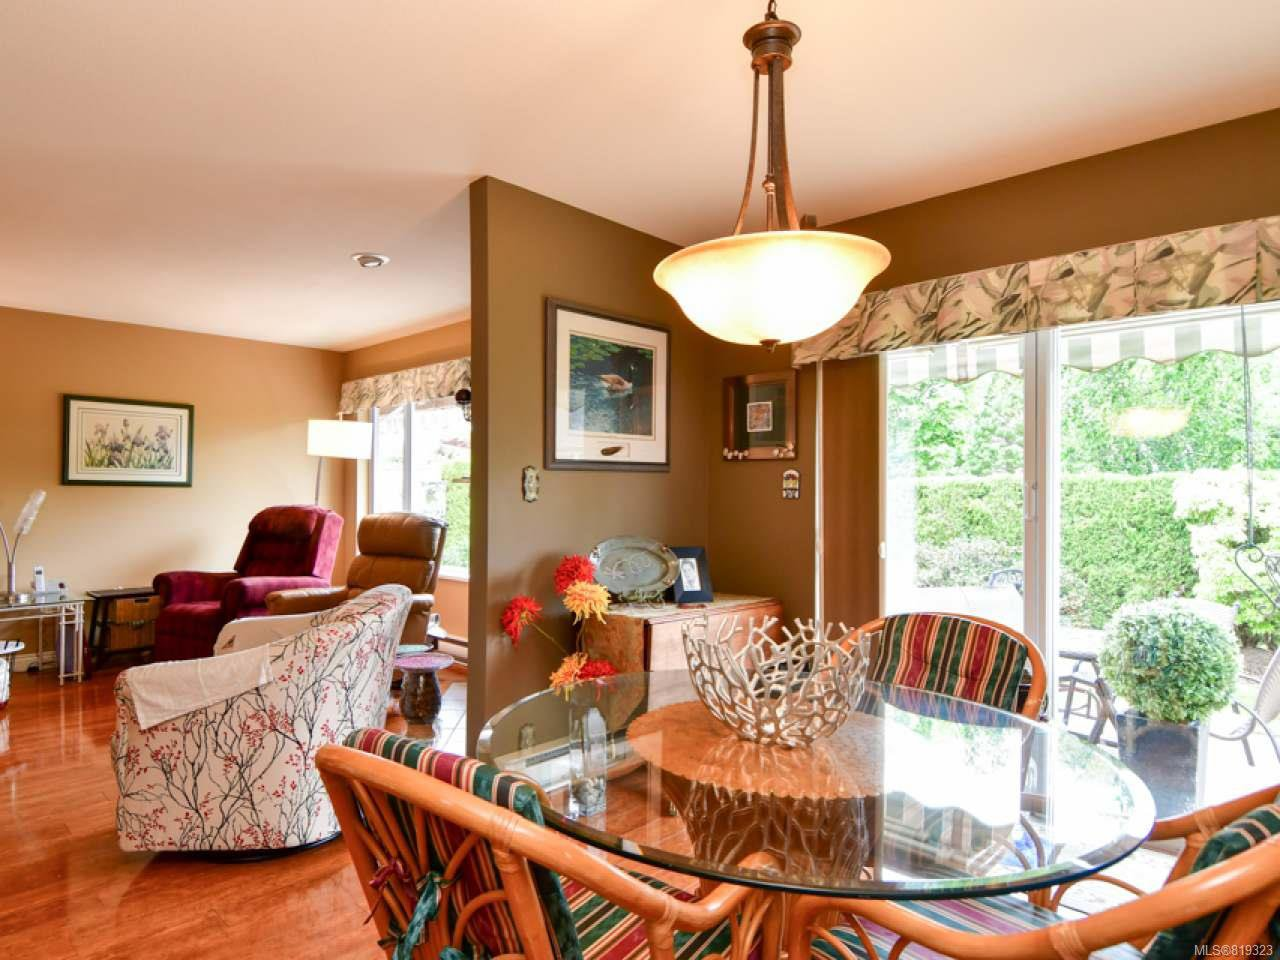 Photo 9: Photos: 35 2055 Galerno Rd in CAMPBELL RIVER: CR Willow Point Row/Townhouse for sale (Campbell River)  : MLS®# 819323